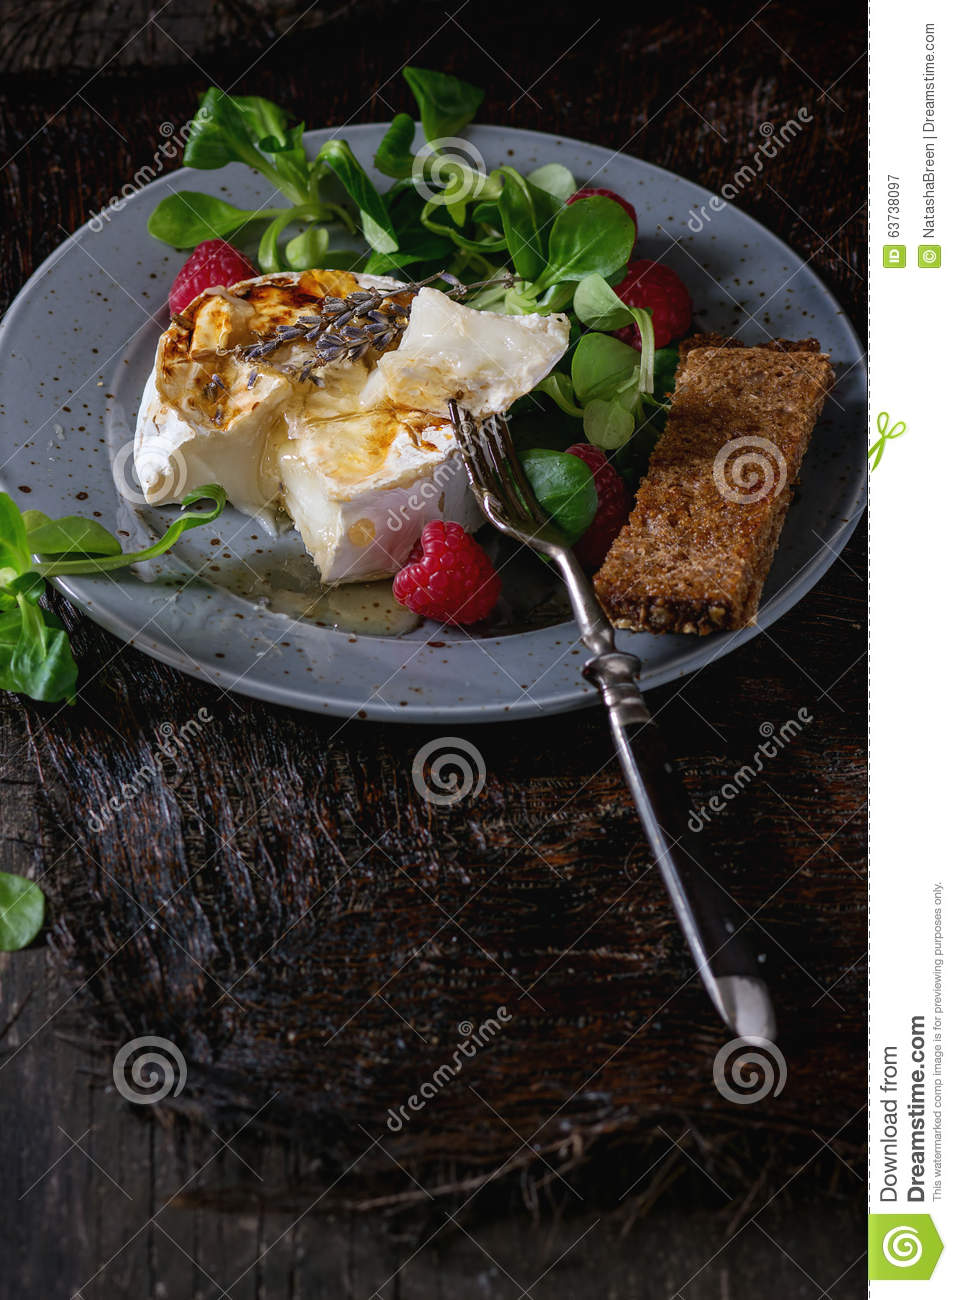 Baked Goat Cheese With Raspberries And Thyme Recipes — Dishmaps